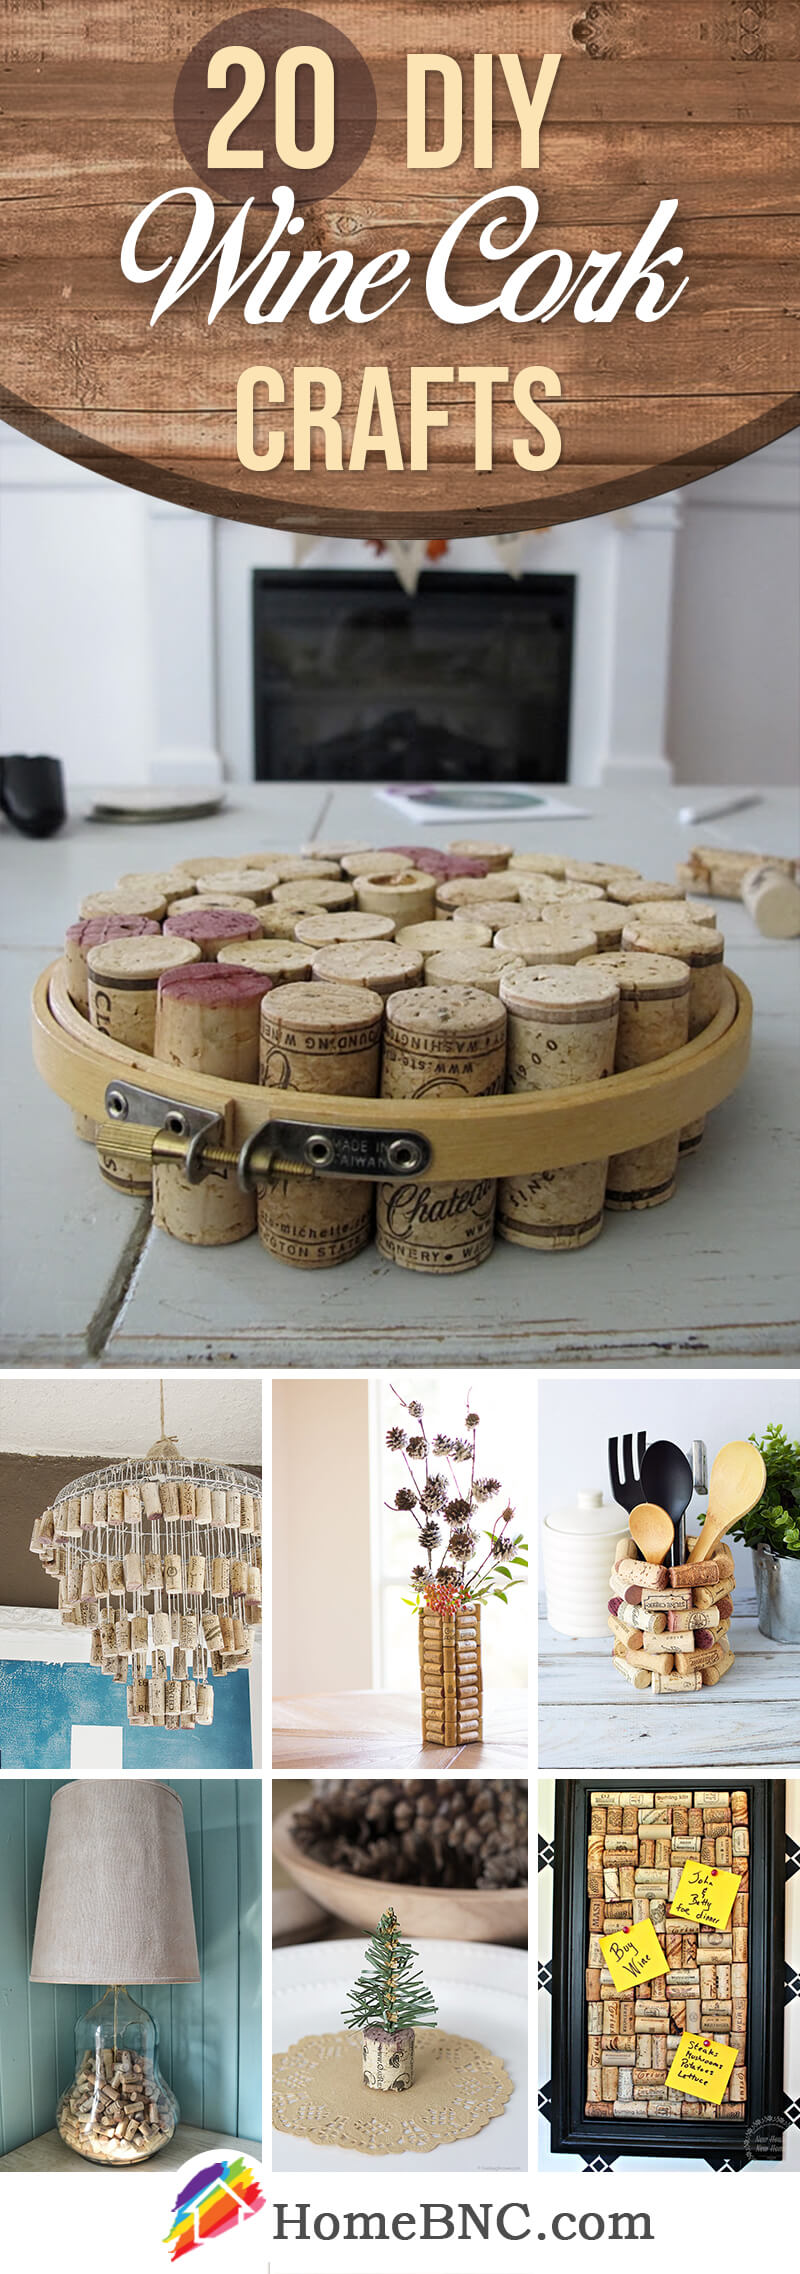 20 Best Diy Wine Cork Crafts Ideas And Designs For 2021